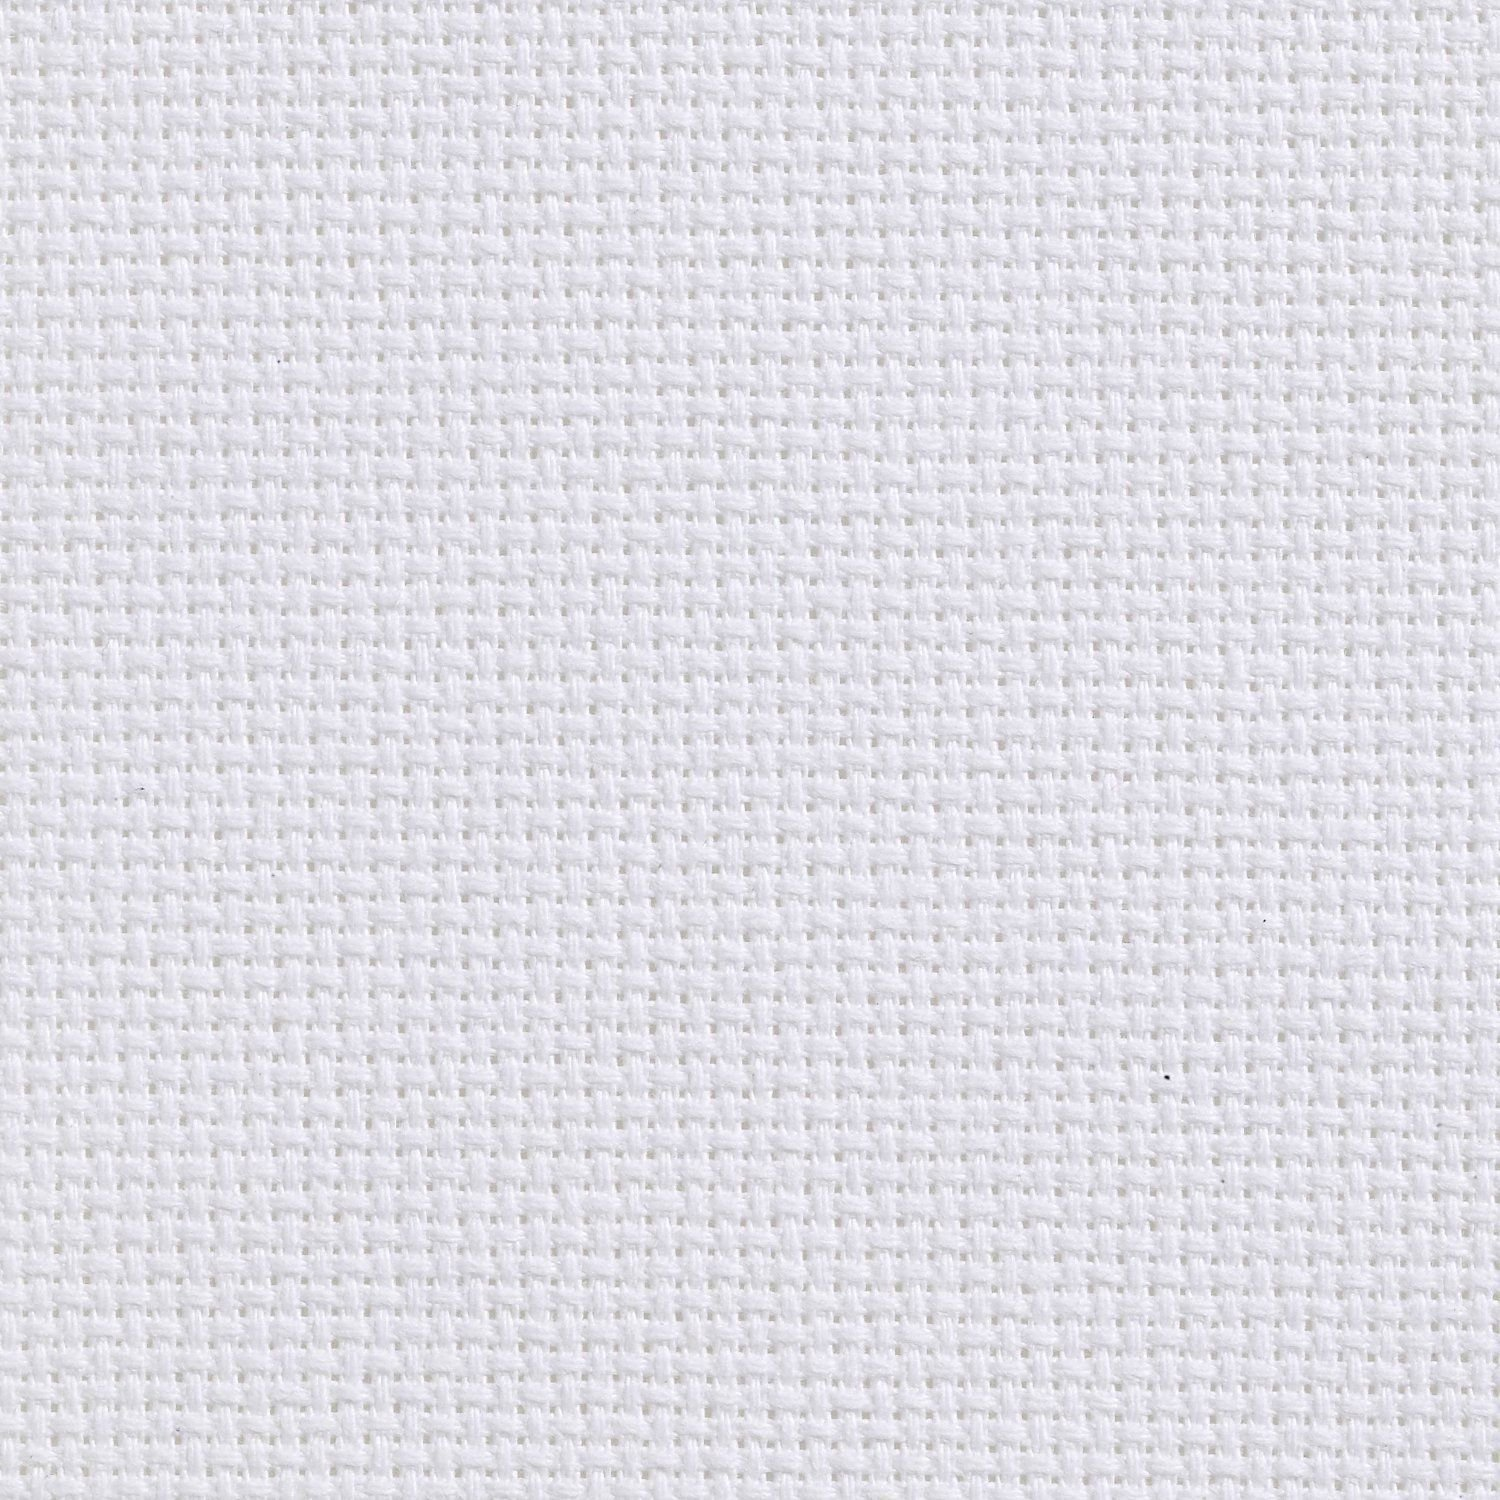 "White 11 Count Cotton Aida Cloth 100cm x50cm/39.37""x19.68"" 11ct 100% Cotton Yarn Cross Stitch Fabric DIY Embroidery Kit Home Decor Arts Crafts & Sewing Needlework ZTGT"